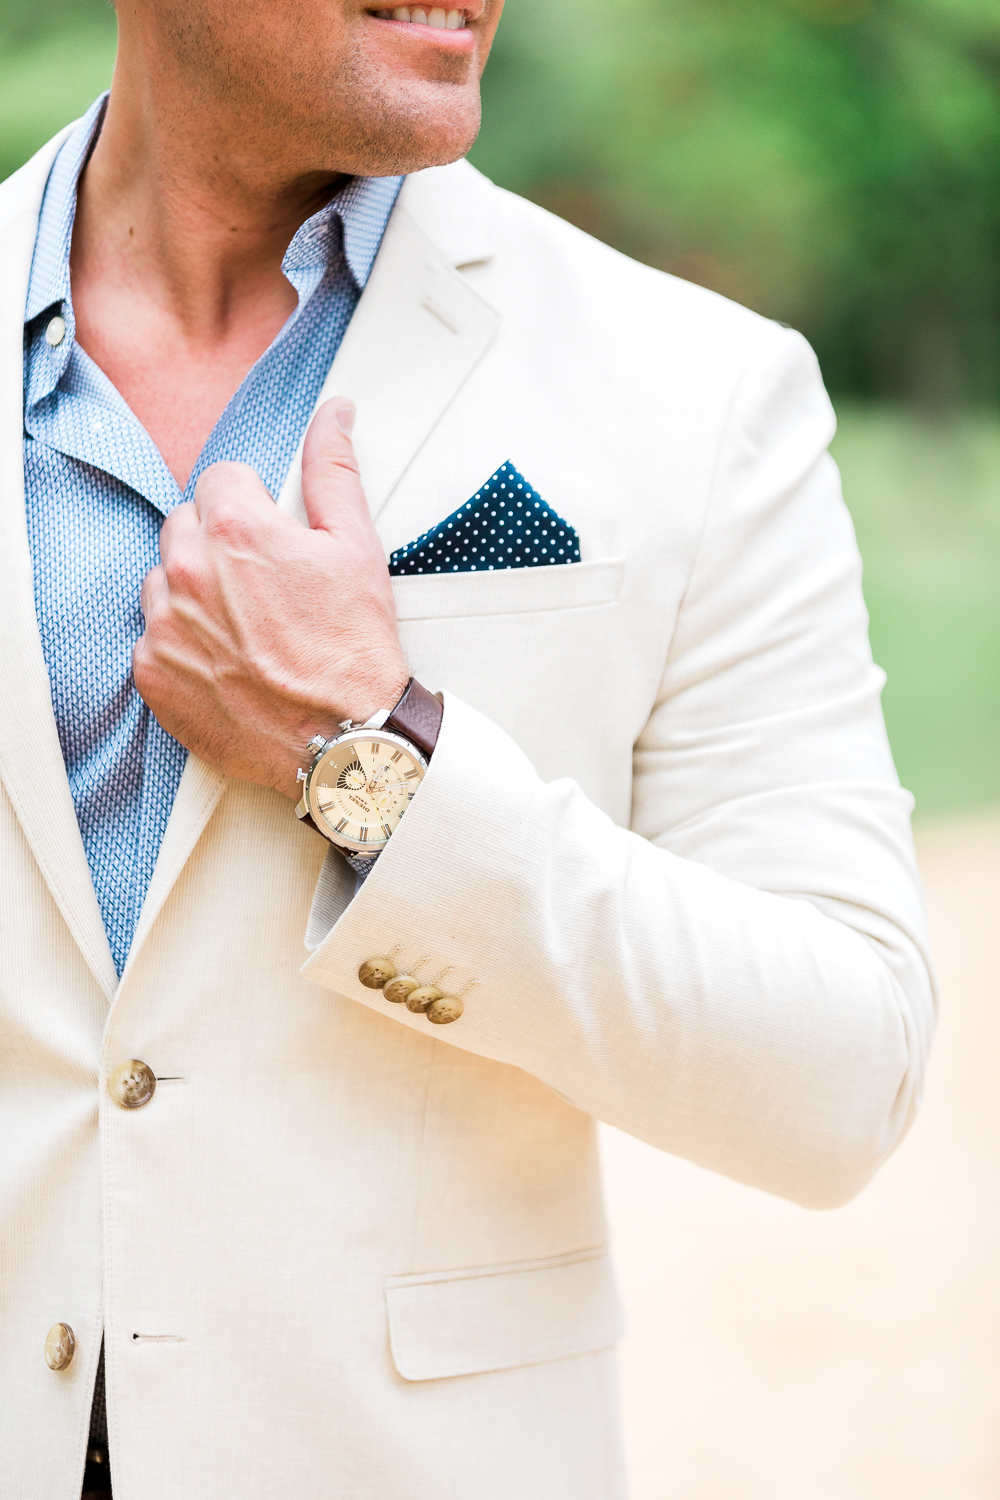 How to dress for engagement pictures